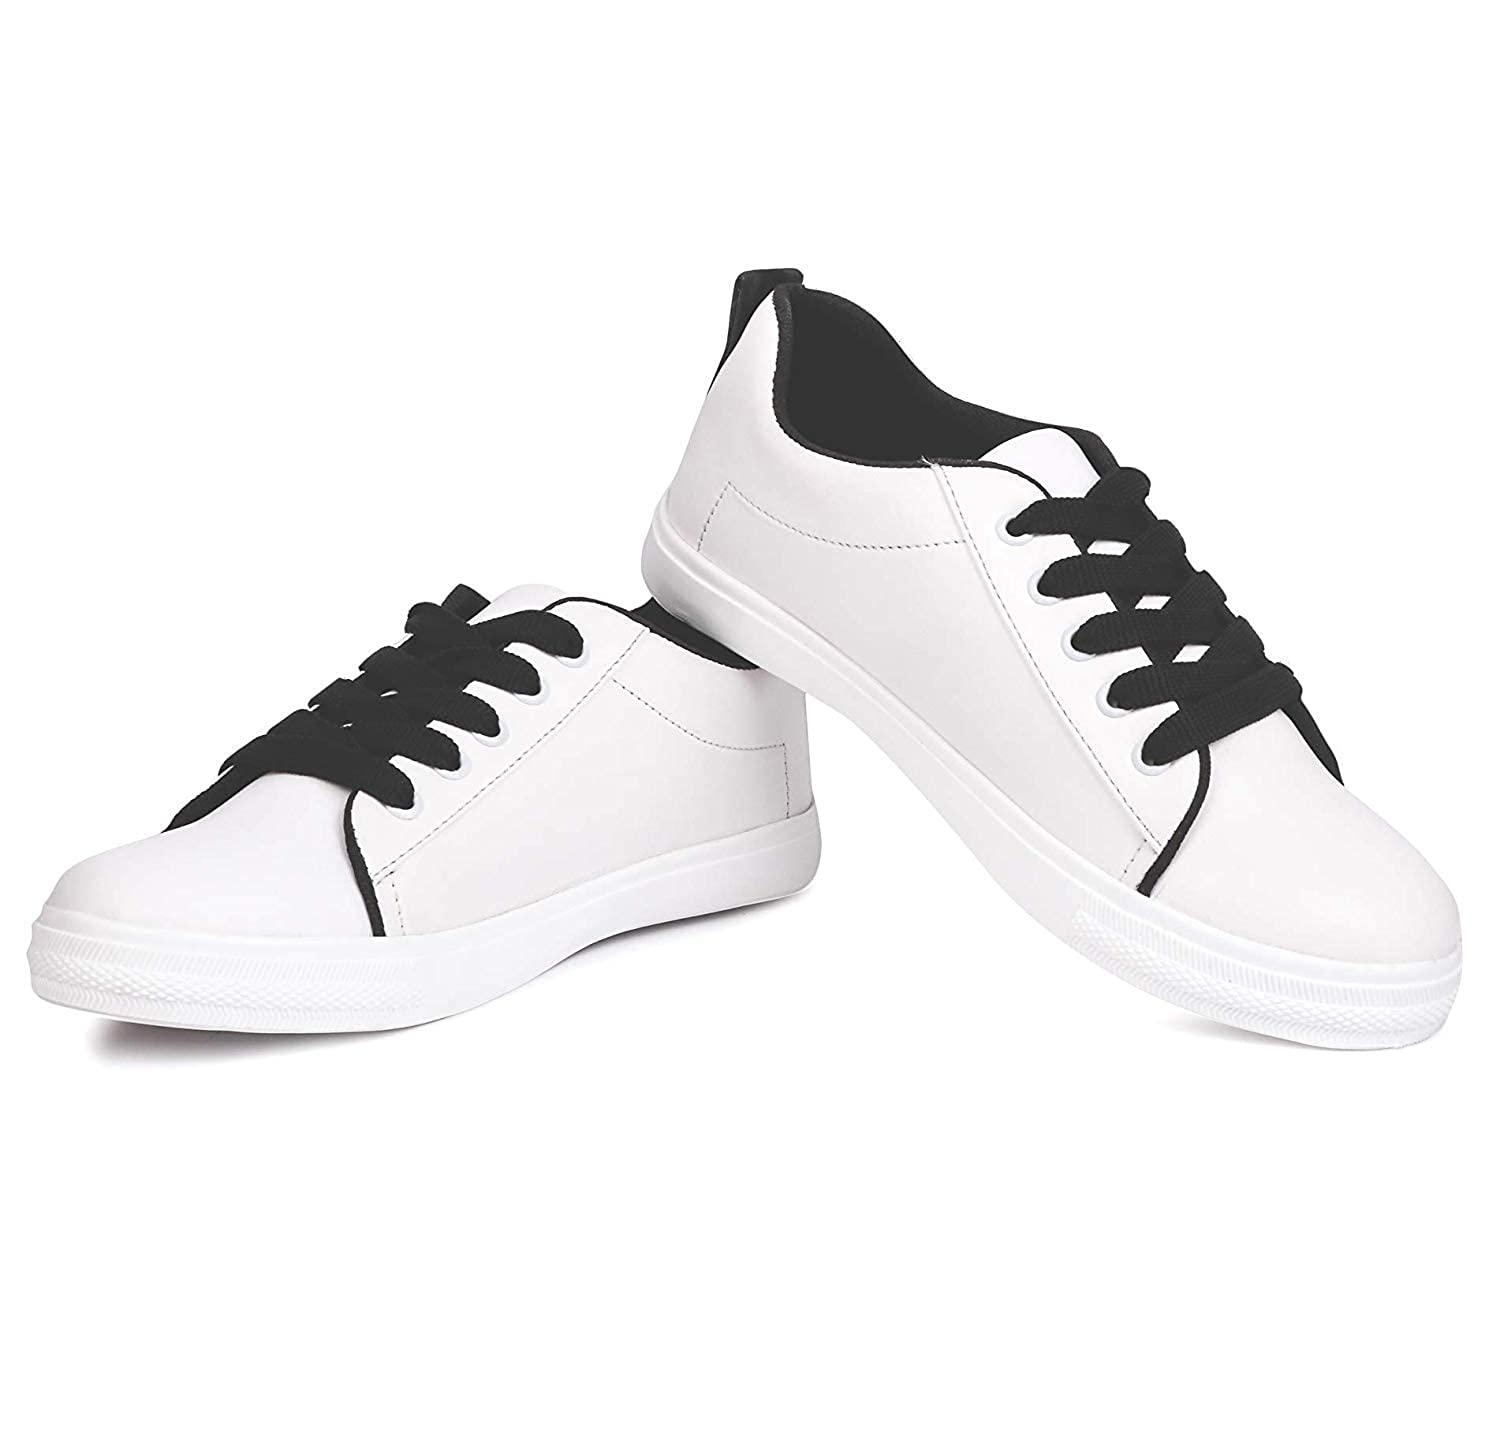 White Casual Shoes Sneaker for Women & Girls